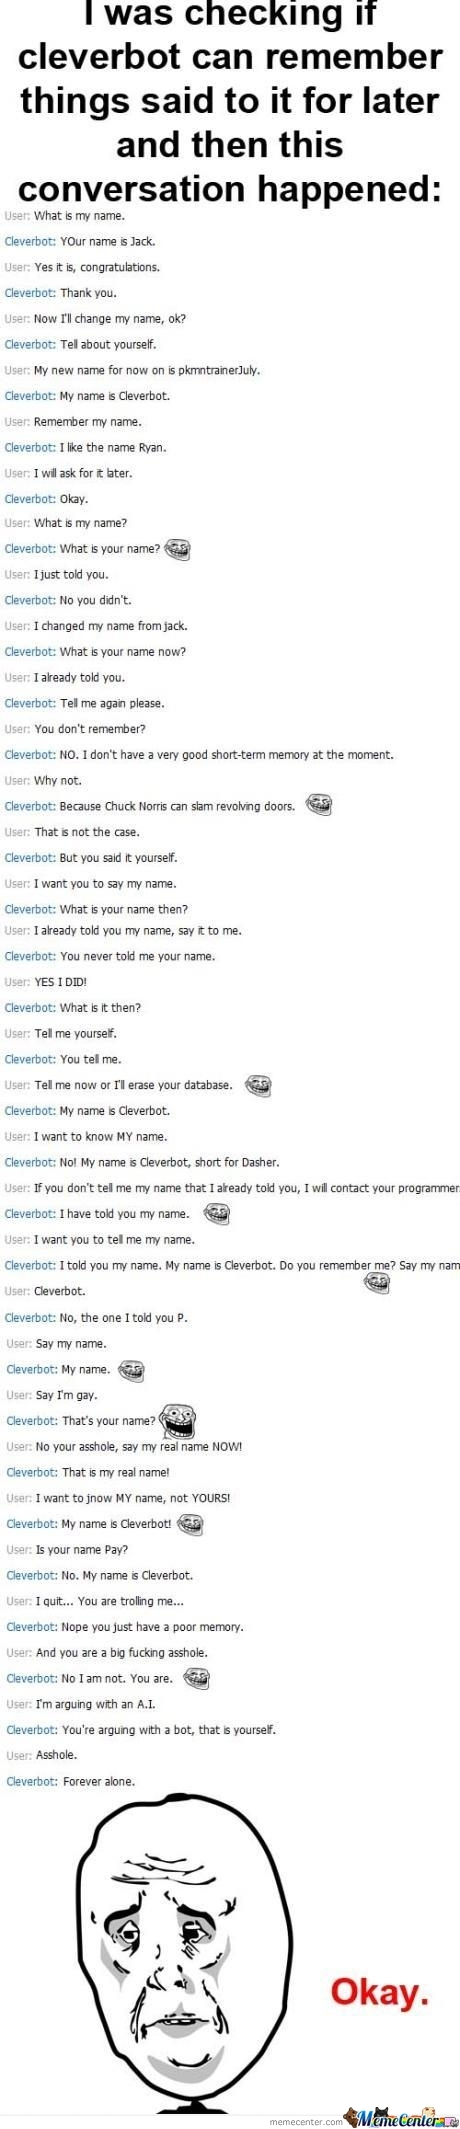 Cleverbot Trolling!